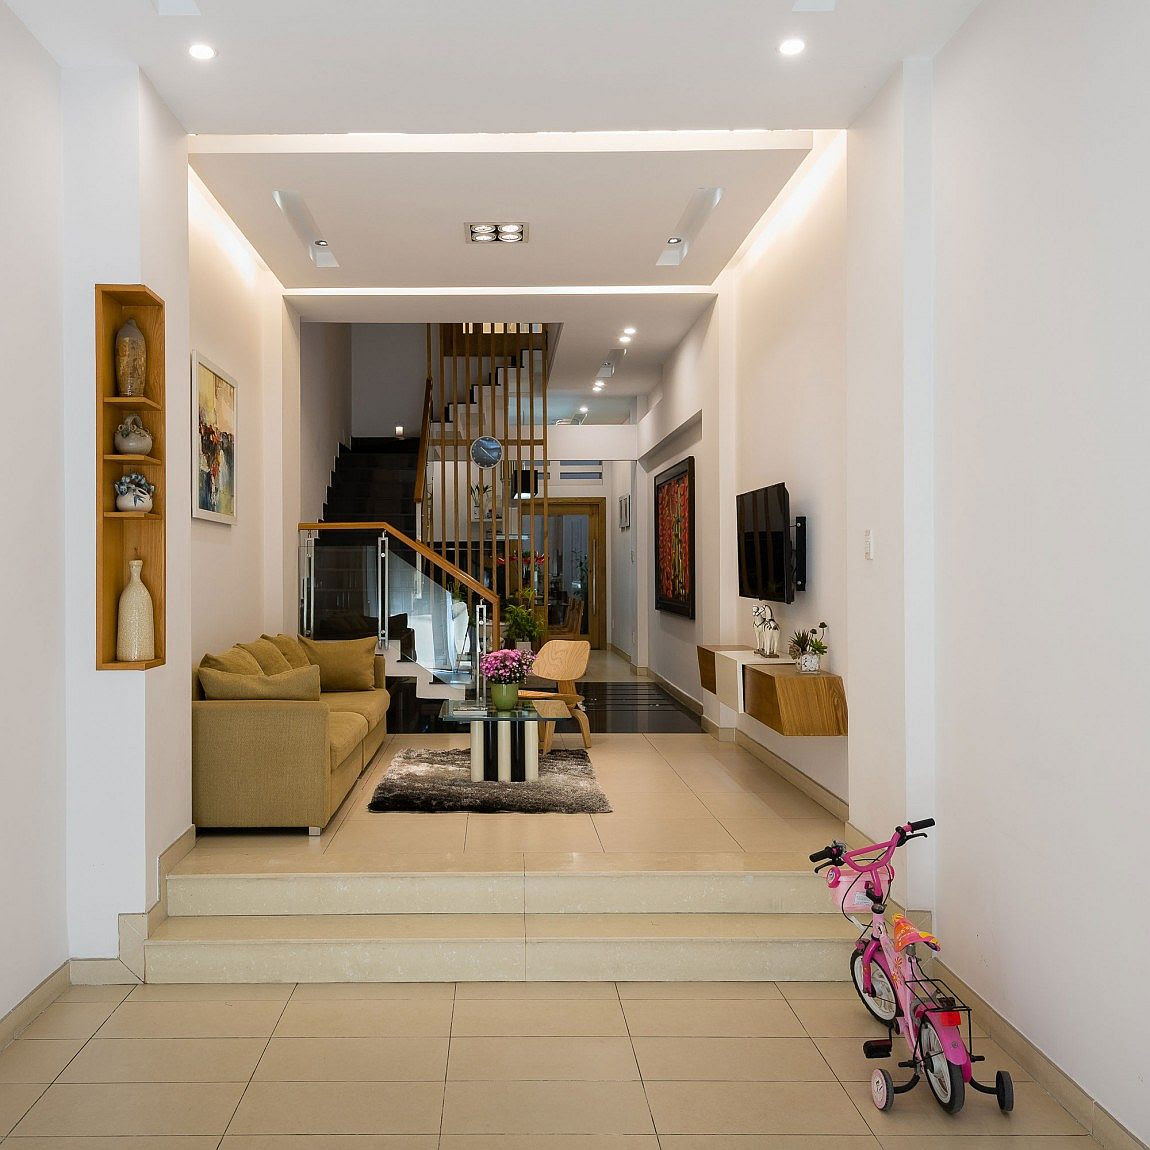 Lower level living area of the modern home in Vietnam